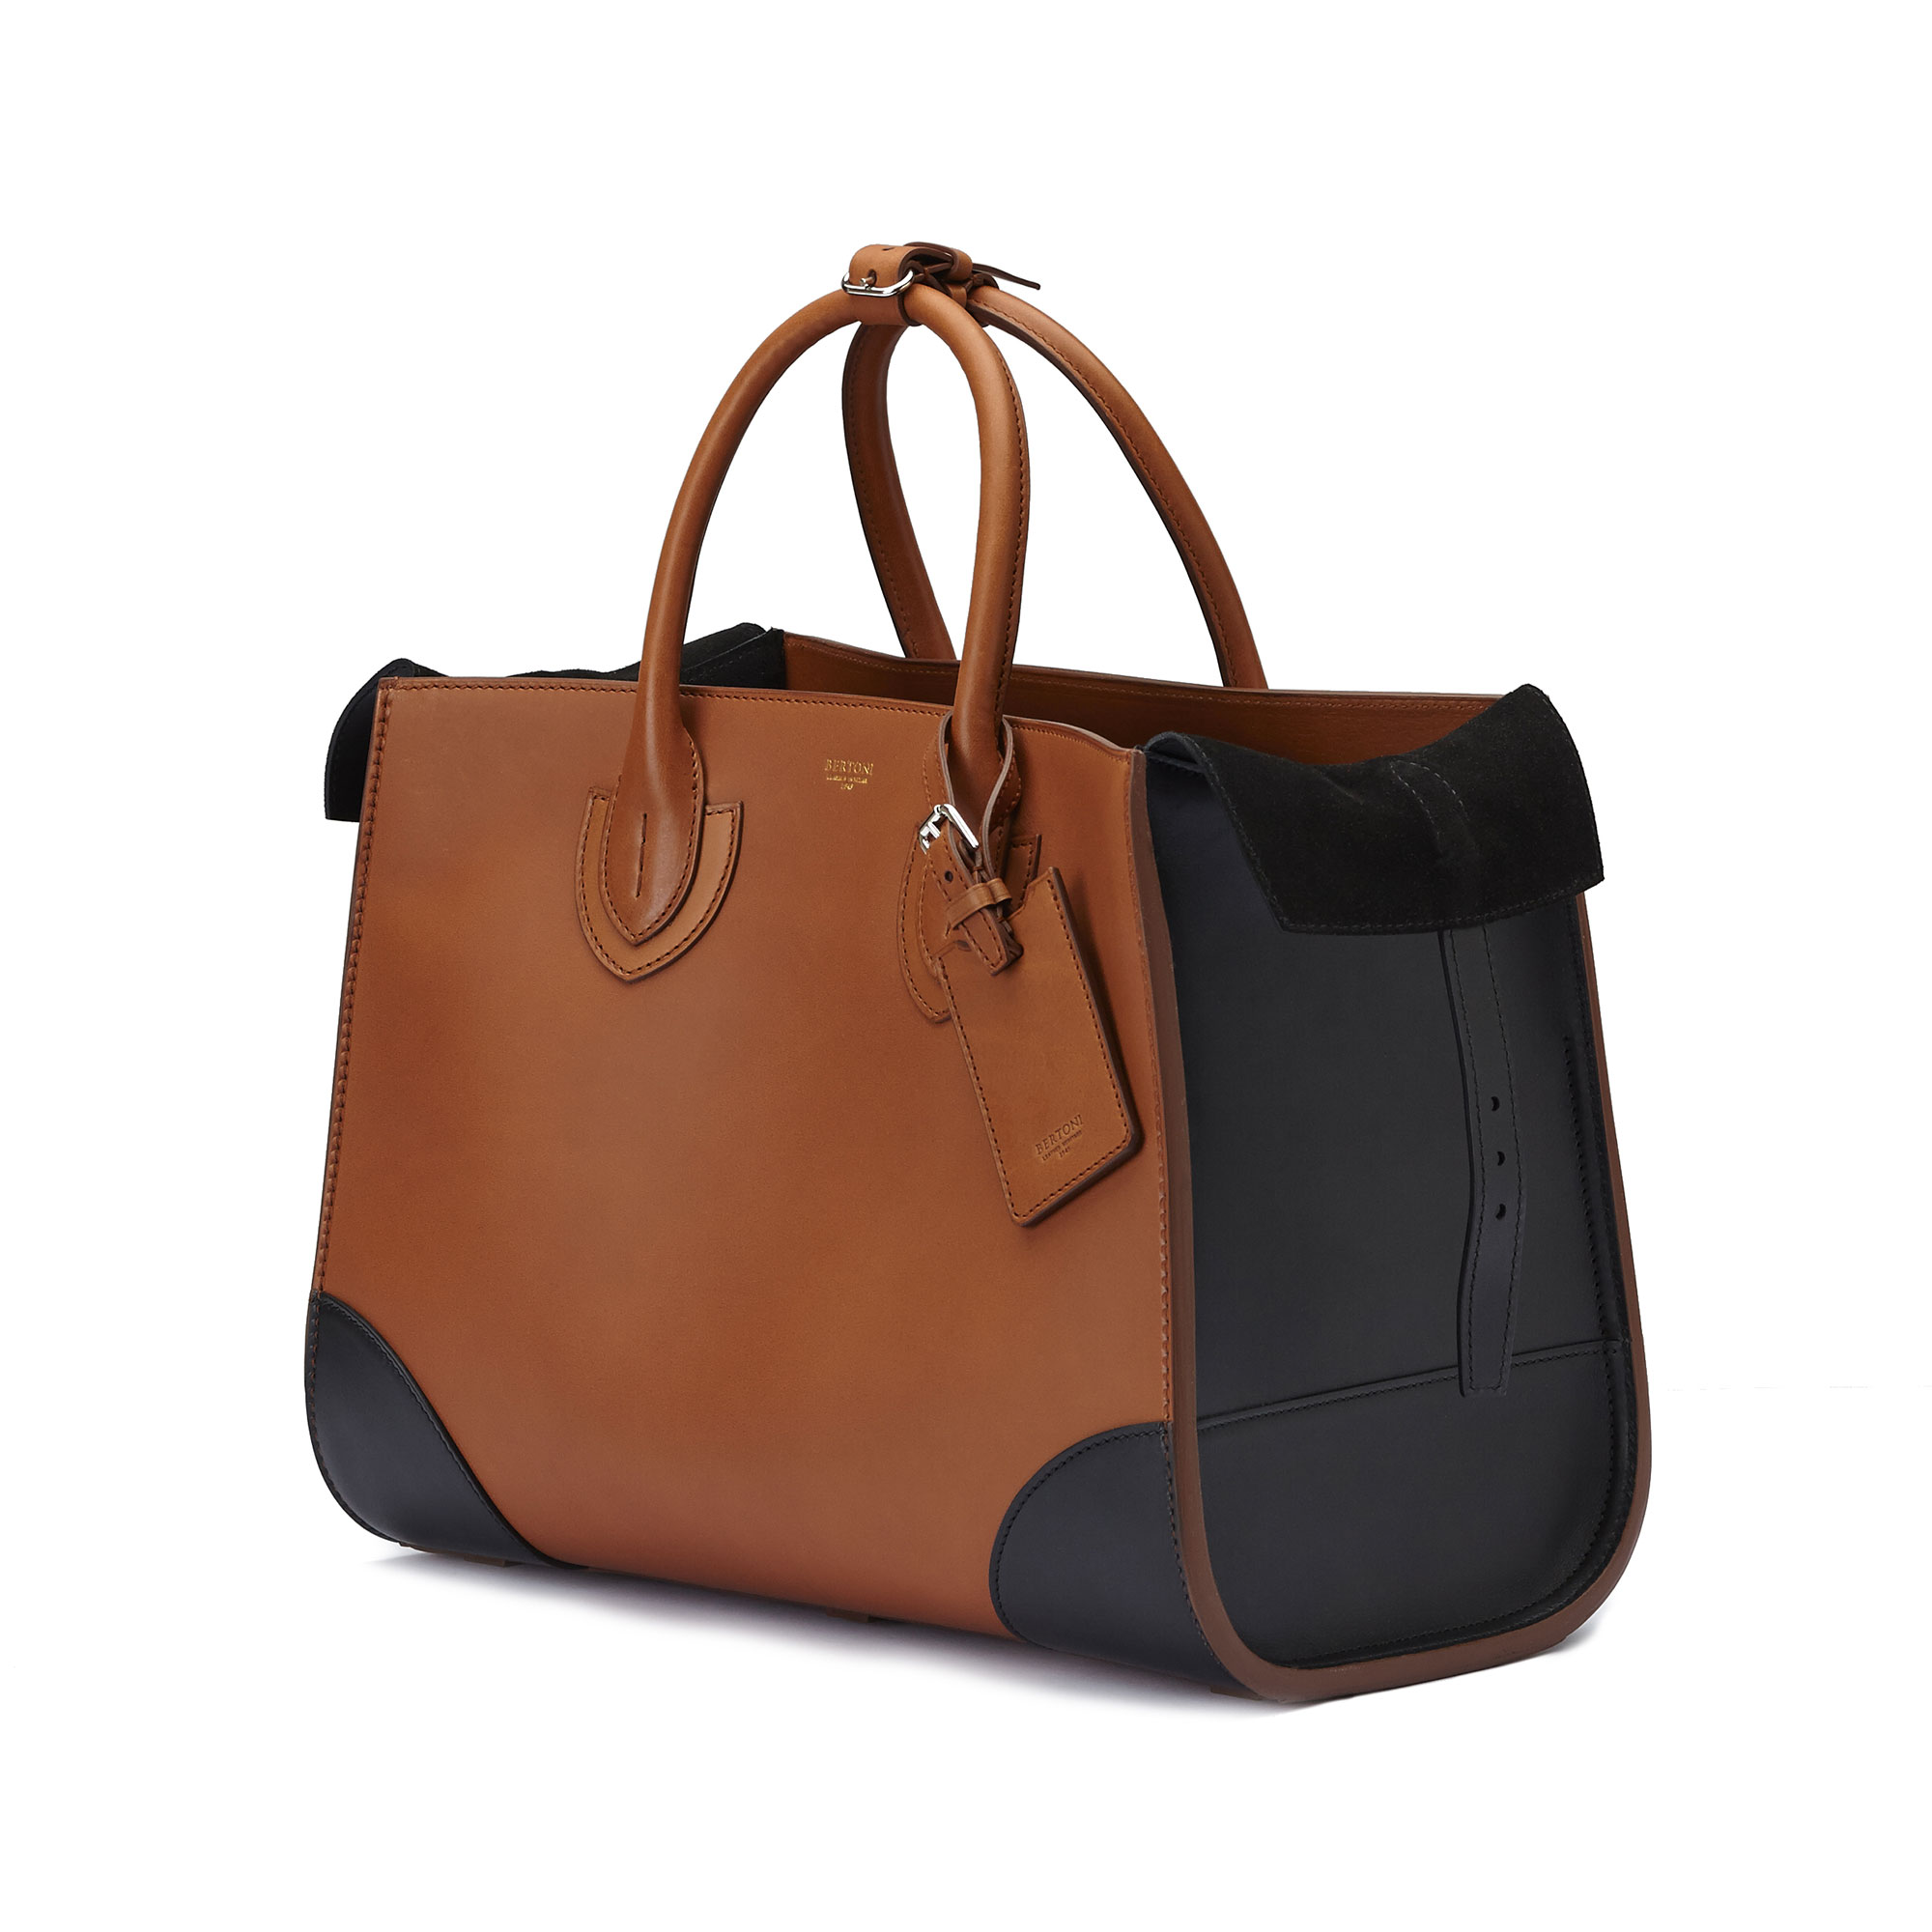 The terrabruciata and black french calf Darcy large bag by Bertoni 1949 04